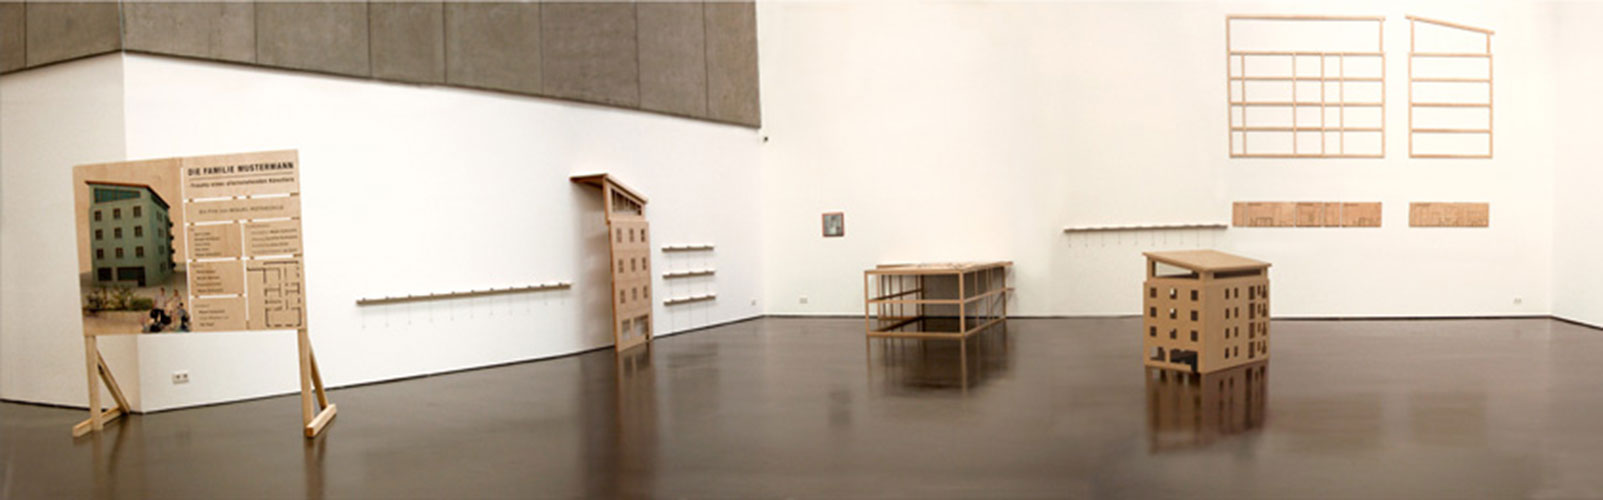 The Mustermann Family - Trauma of an Unattached Artist, © 2001 - 2003, Film Installation consisting of 7 parts in plywood, 67 flip-books and 1 photography, variable size, house parts: scale 1:10, model 1:20